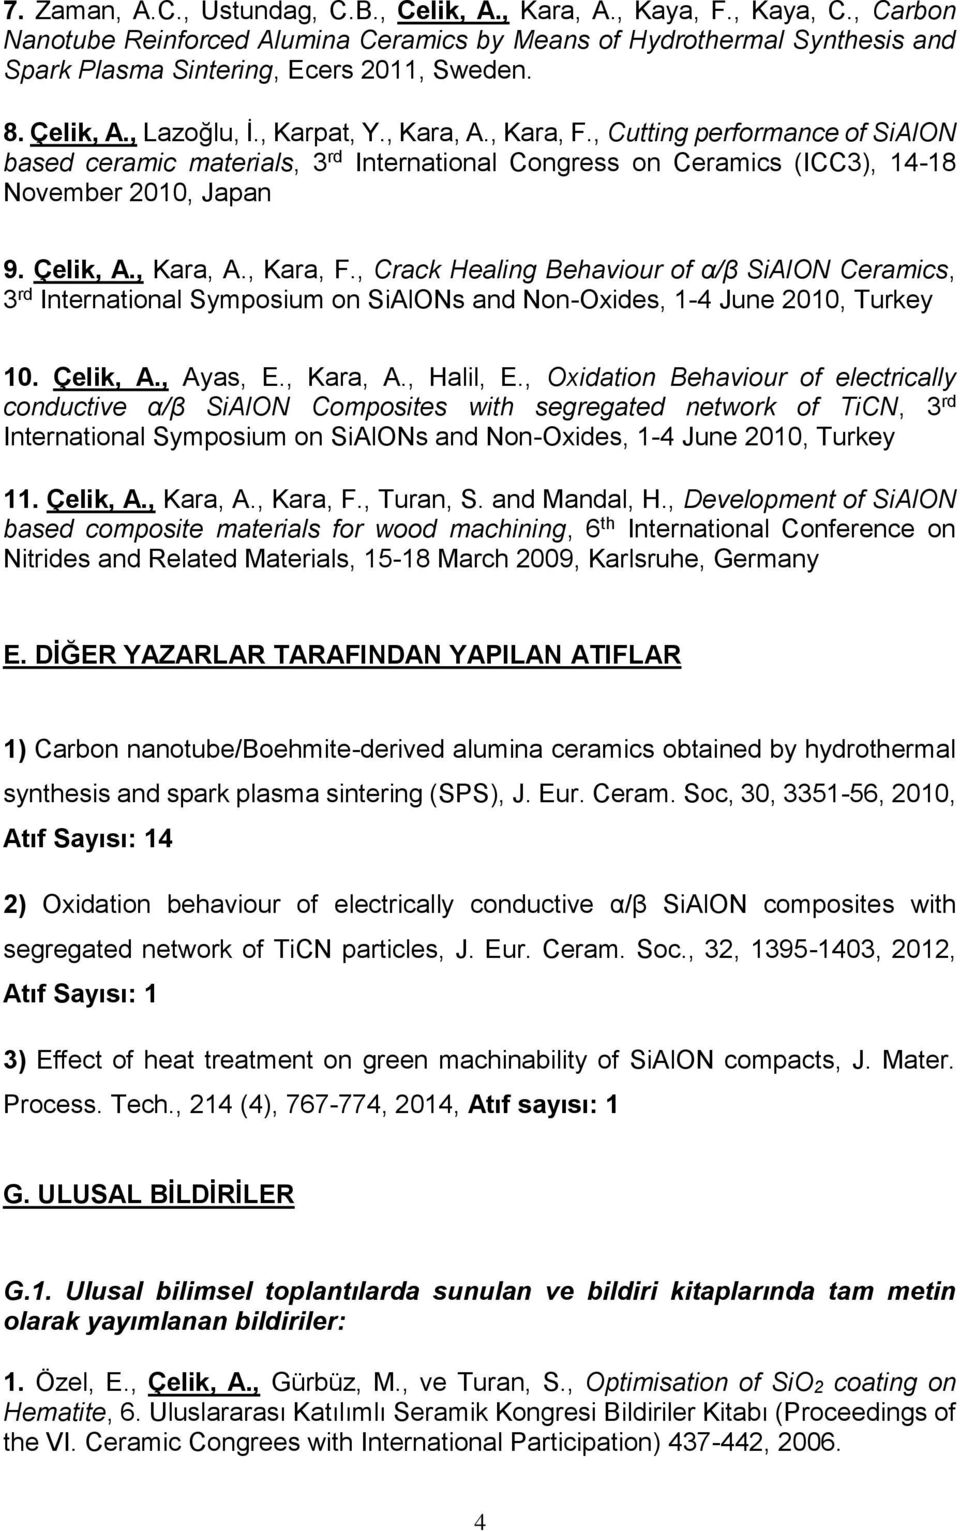 Çelik, A., Kara, A., Kara, F., Crack Healing Behaviour of α/β SiAlON Ceramics, 3 rd International Symposium on SiAlONs and Non-Oxides, 1-4 June 2010, Turkey 10. Çelik, A., Ayas, E., Kara, A., Halil, E.